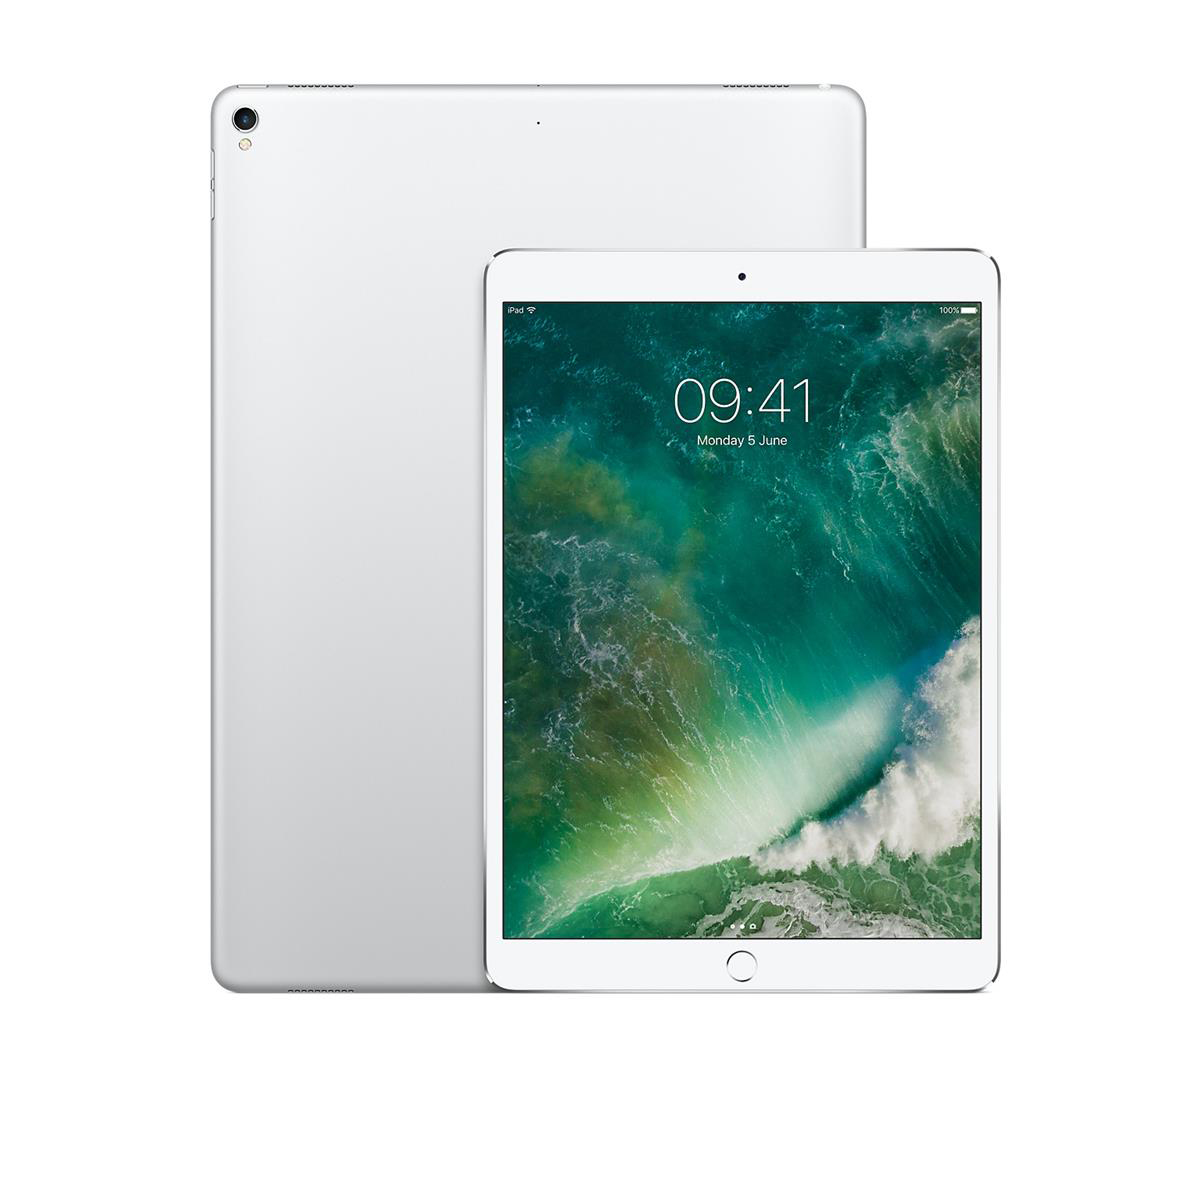 Apple iPad Pro A10X Processor Wi-Fi 64GB 10.5in Retina Display ID Finger Sensor Silver Ref MQDW2B/A